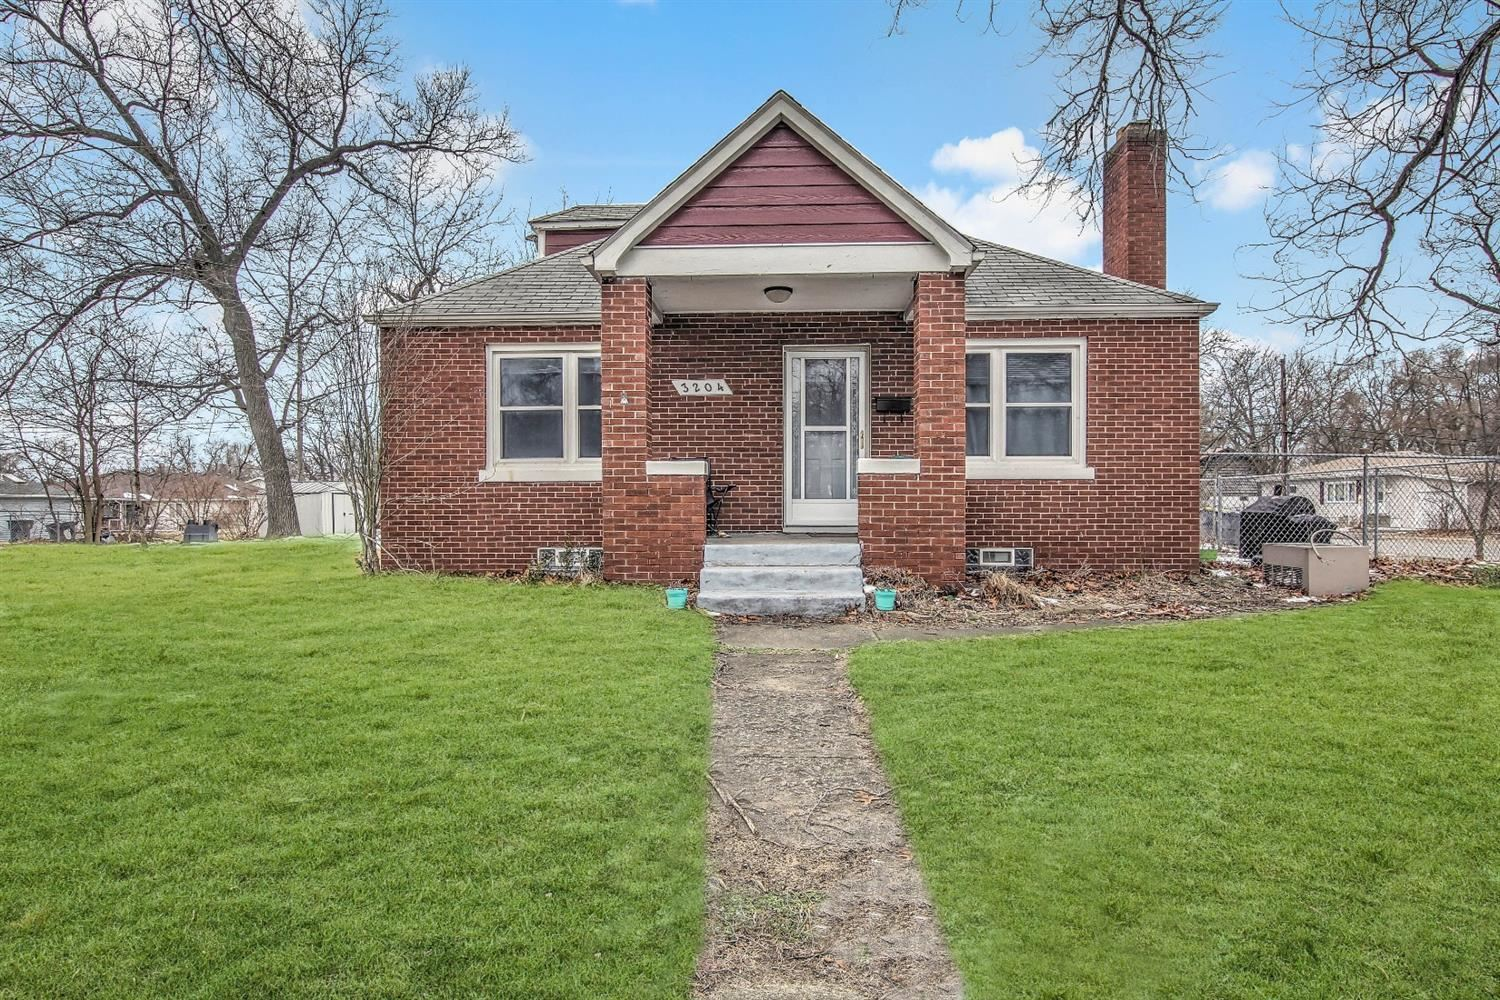 3204 Michigan Street, New Chicago, IN 46342 - #: 469975